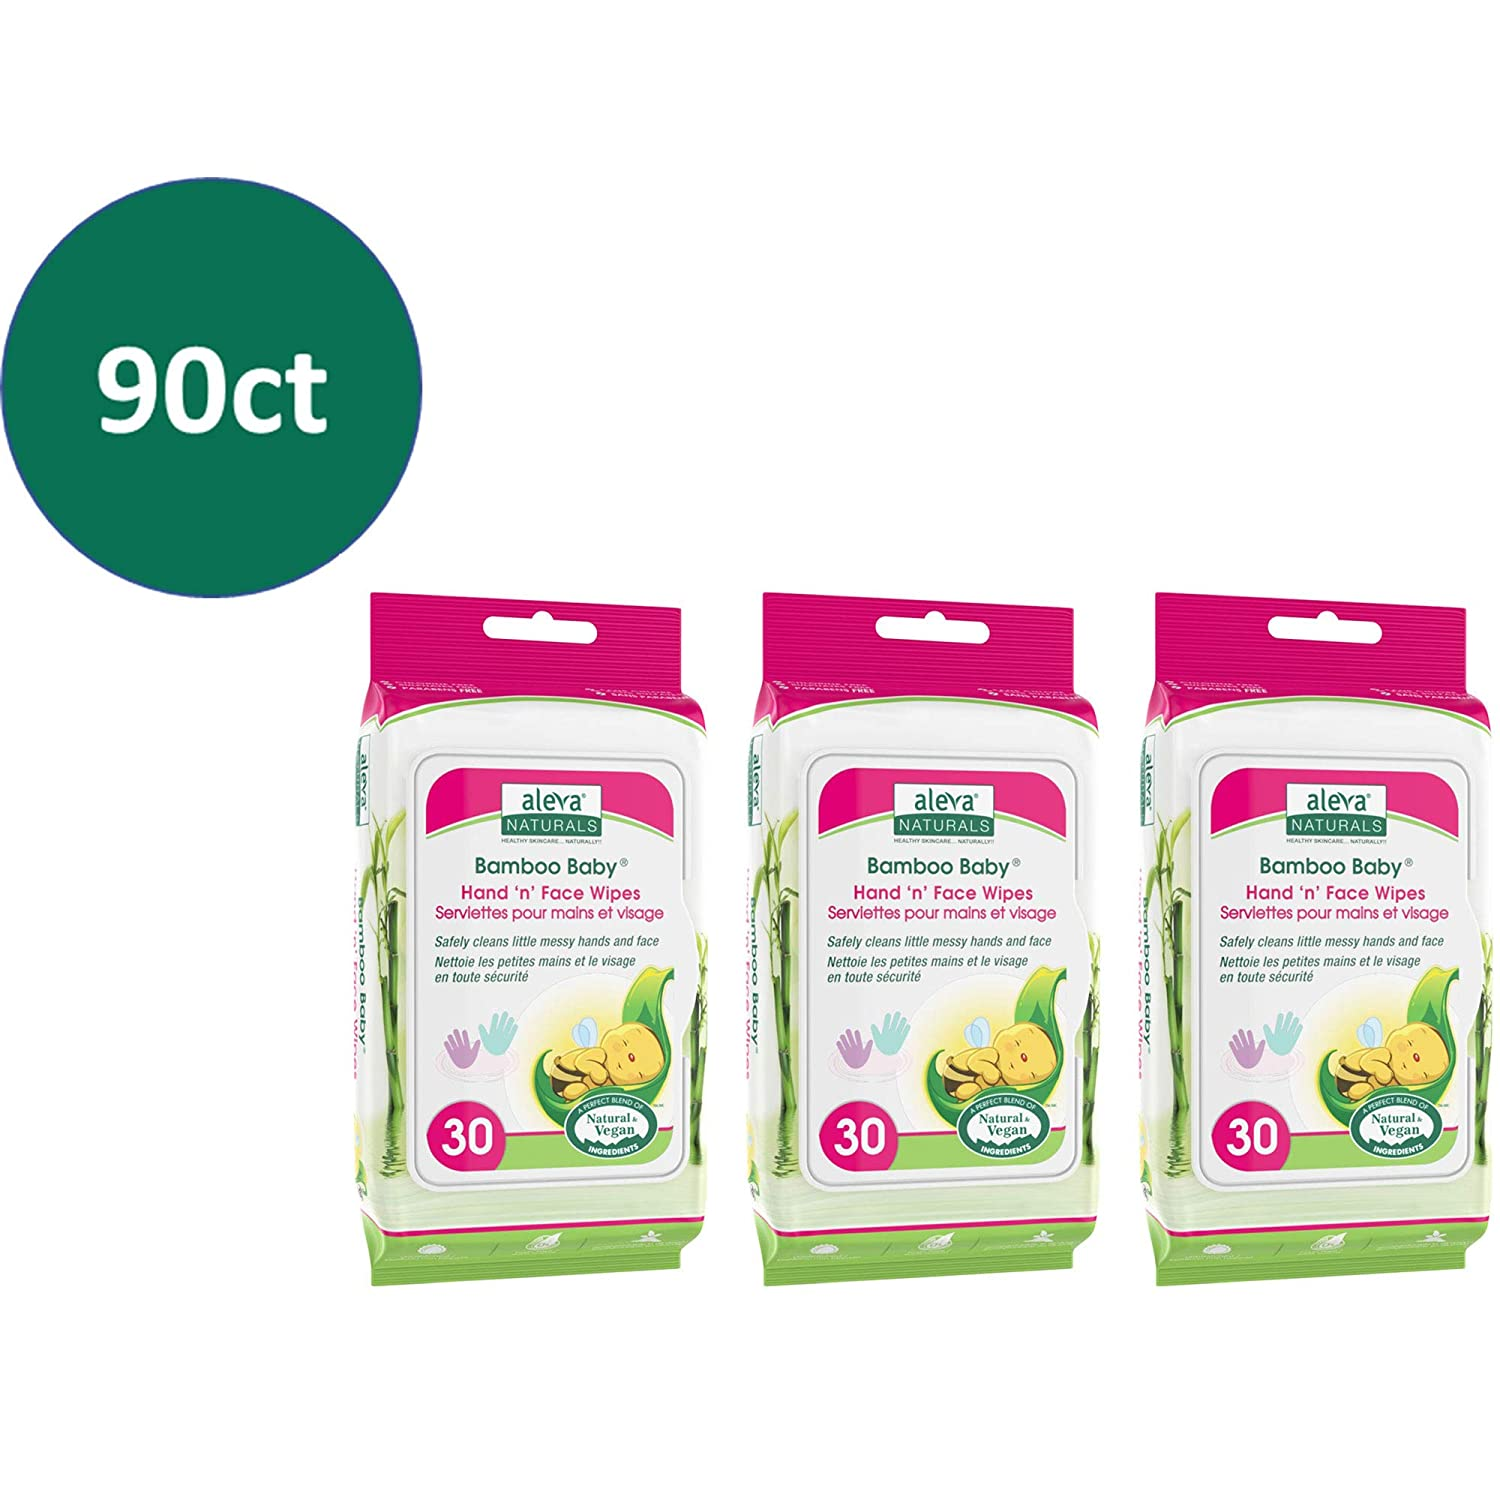 Aleva Naturals Bamboo Baby Hand and face Wipes 3 X 30ct = 90ct 90 count